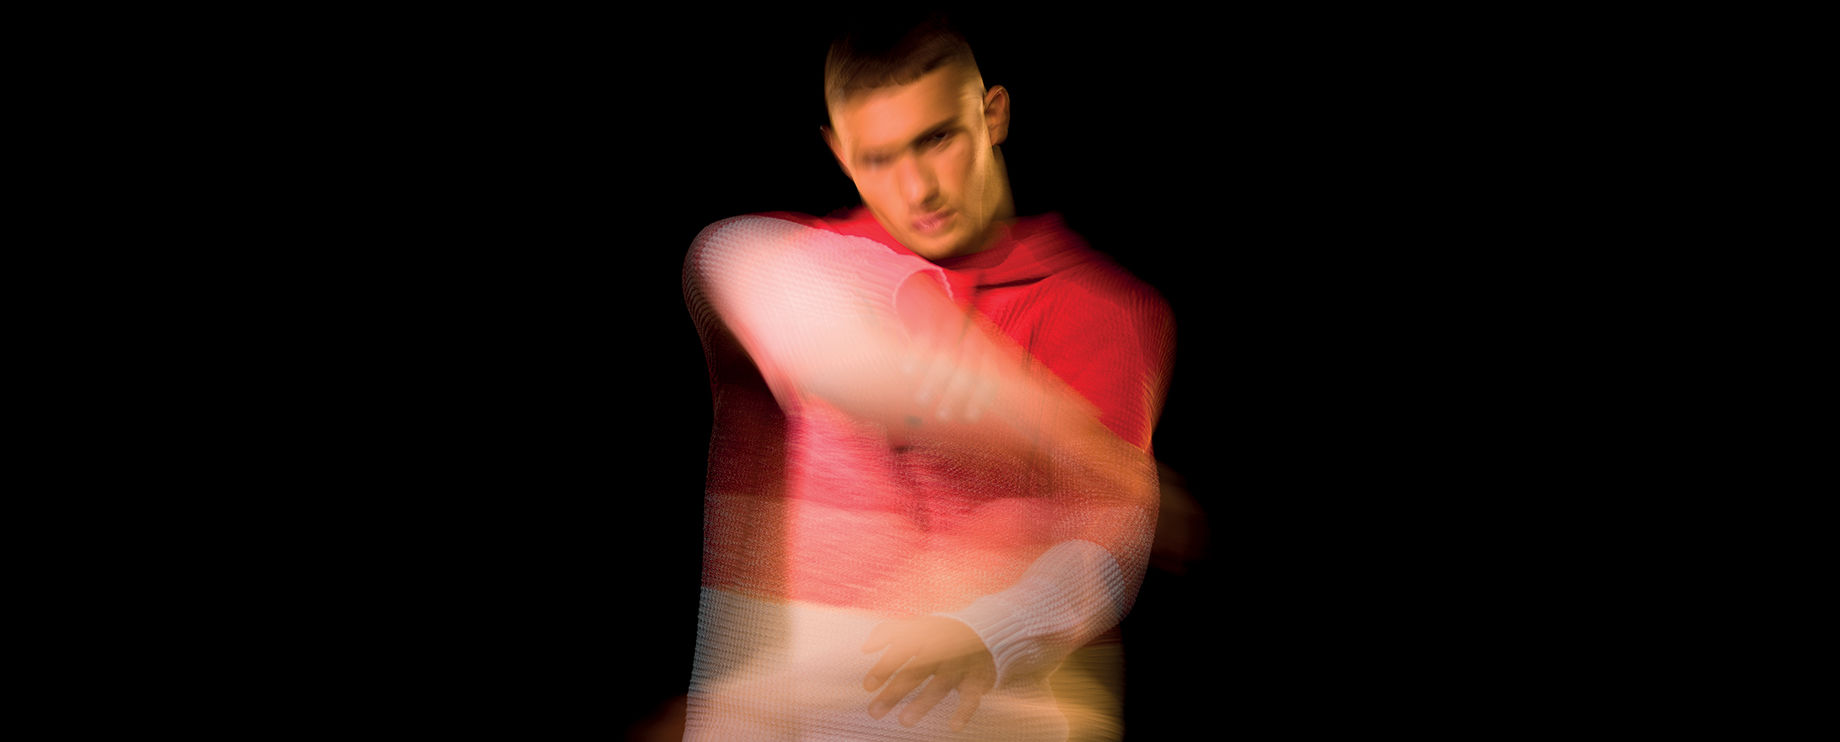 Blurred image of model wearing a sweater with red to white gradient stripes.